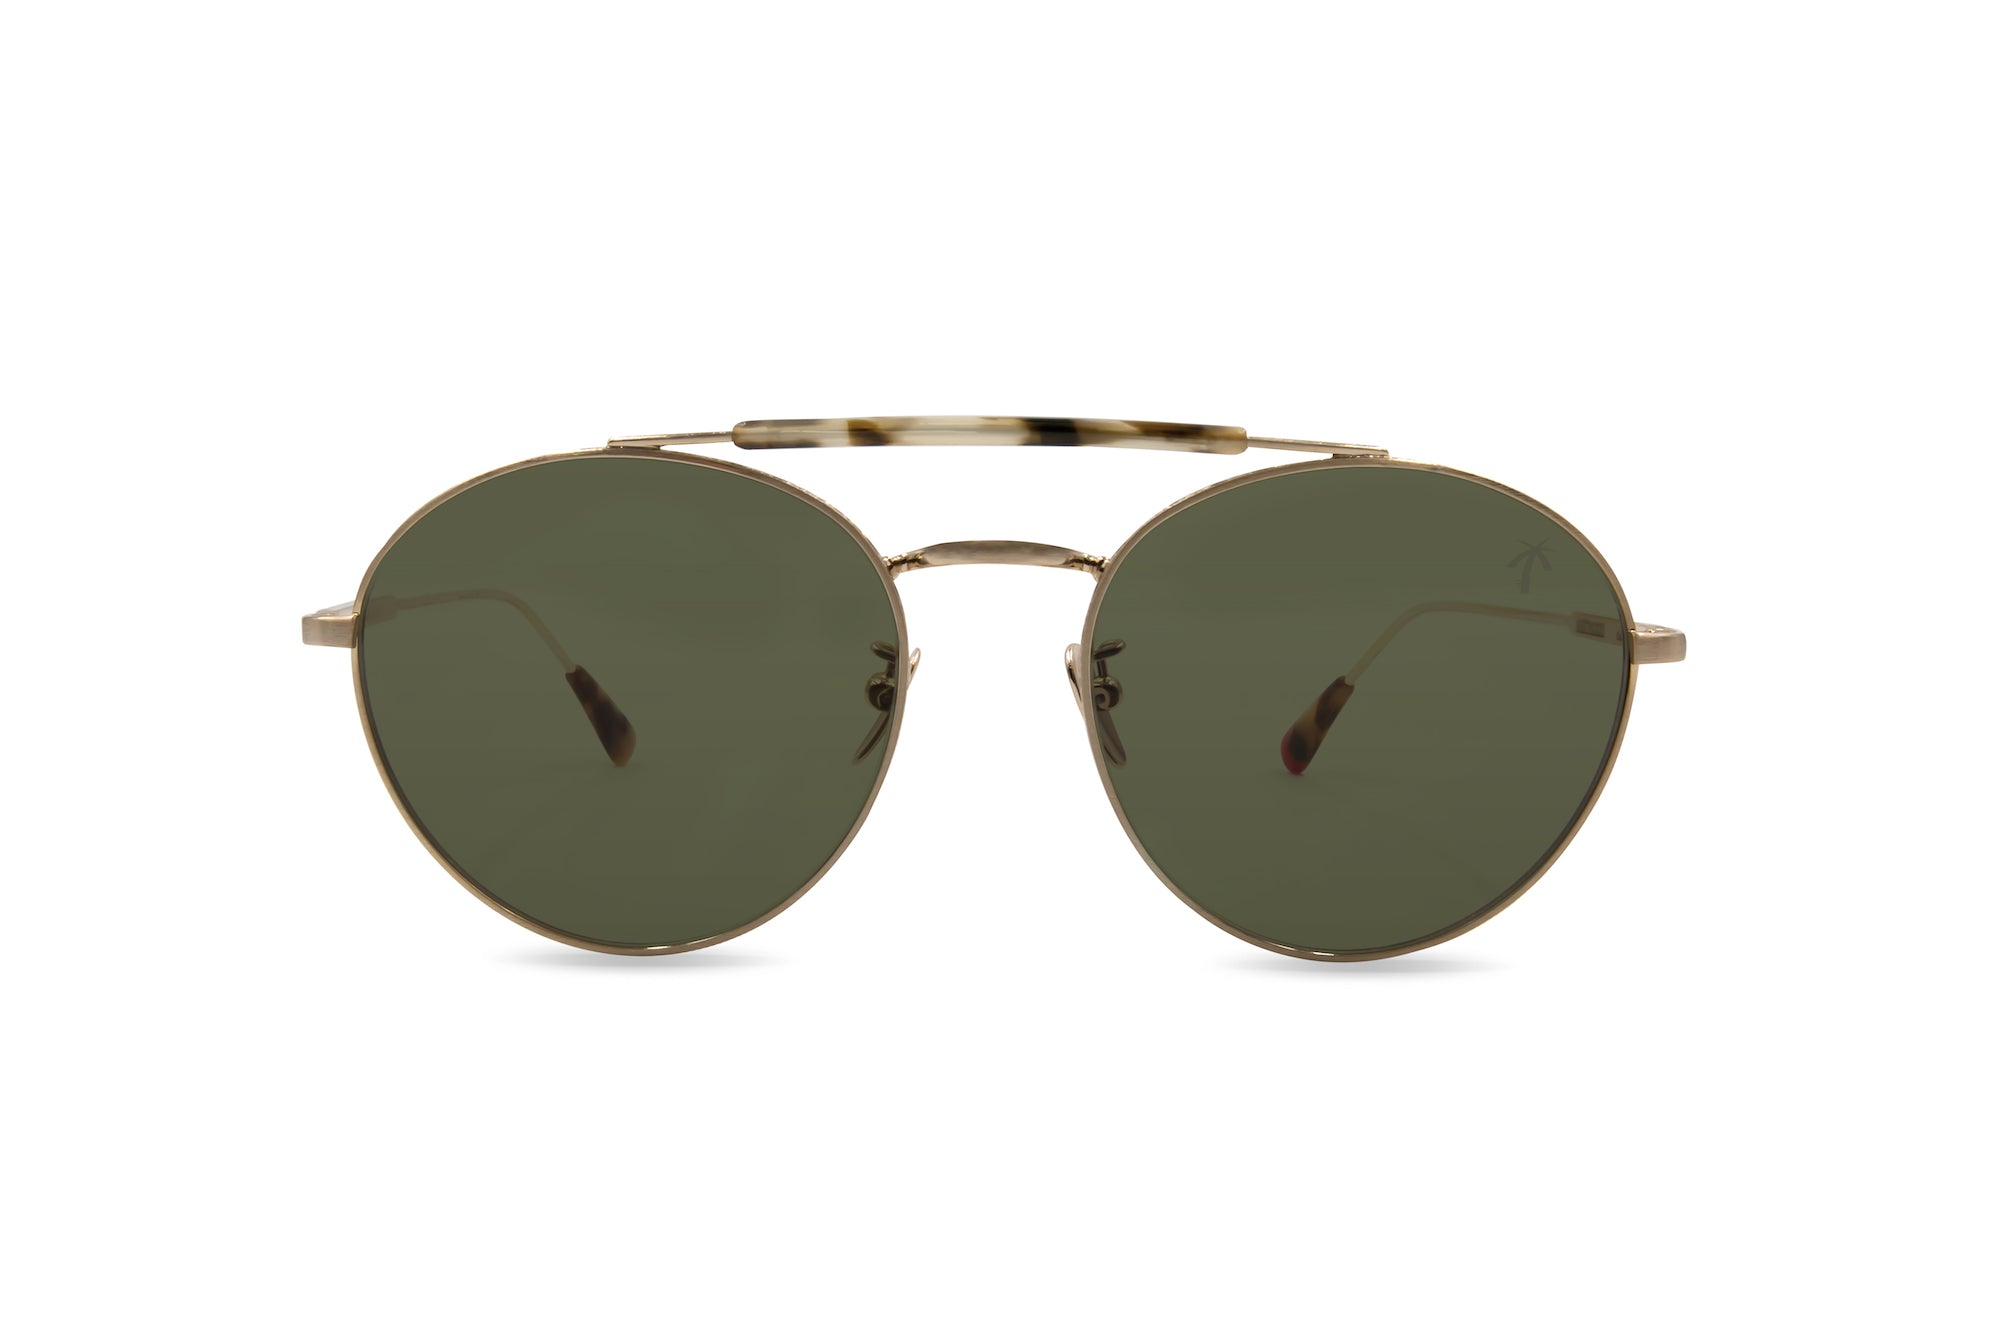 westwood-in-olive-green